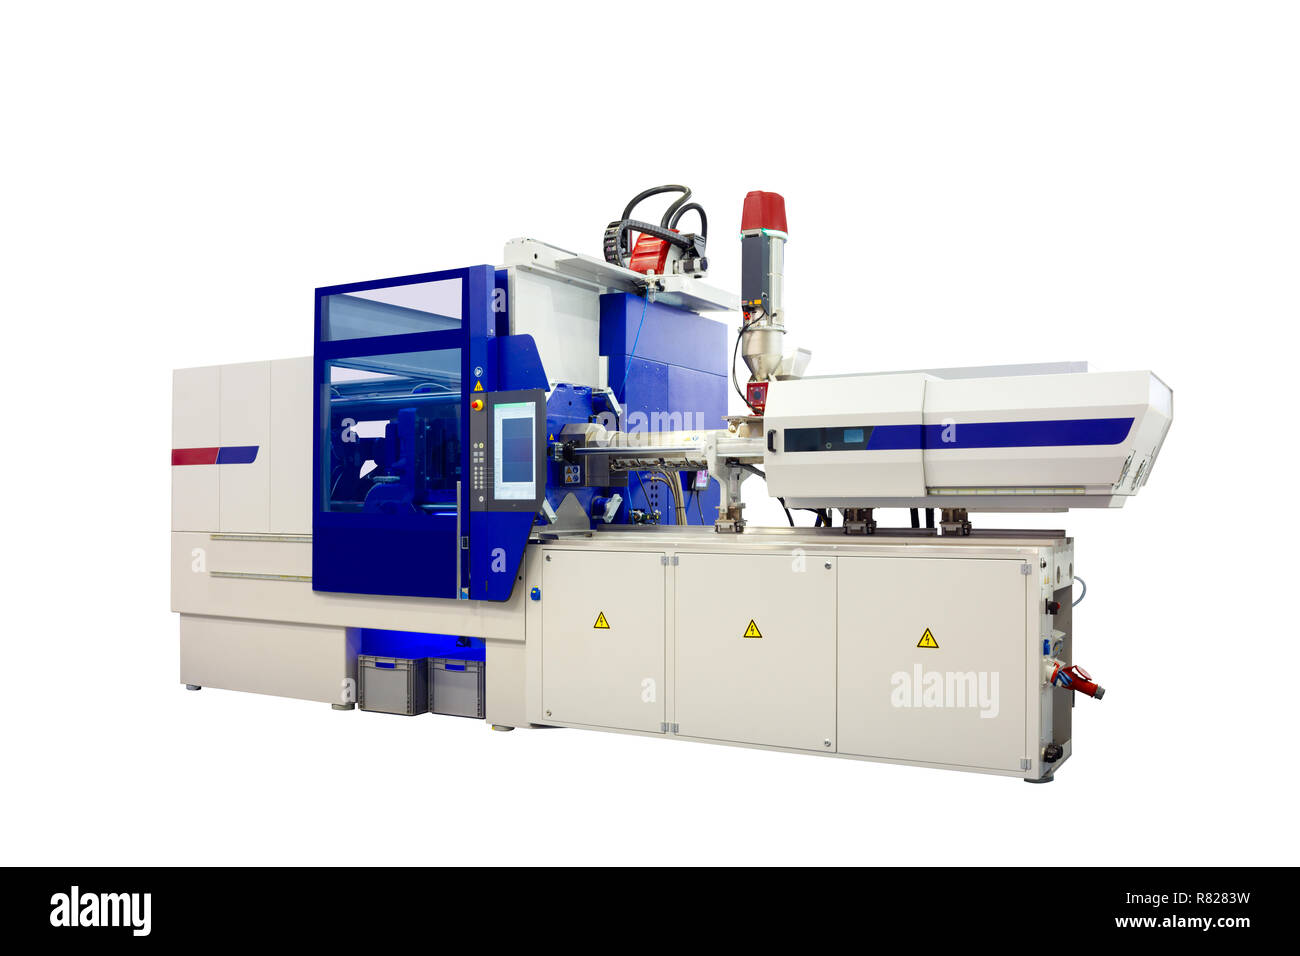 Production machine for manufacture products from pvc plastic extrusion technology - Stock Image